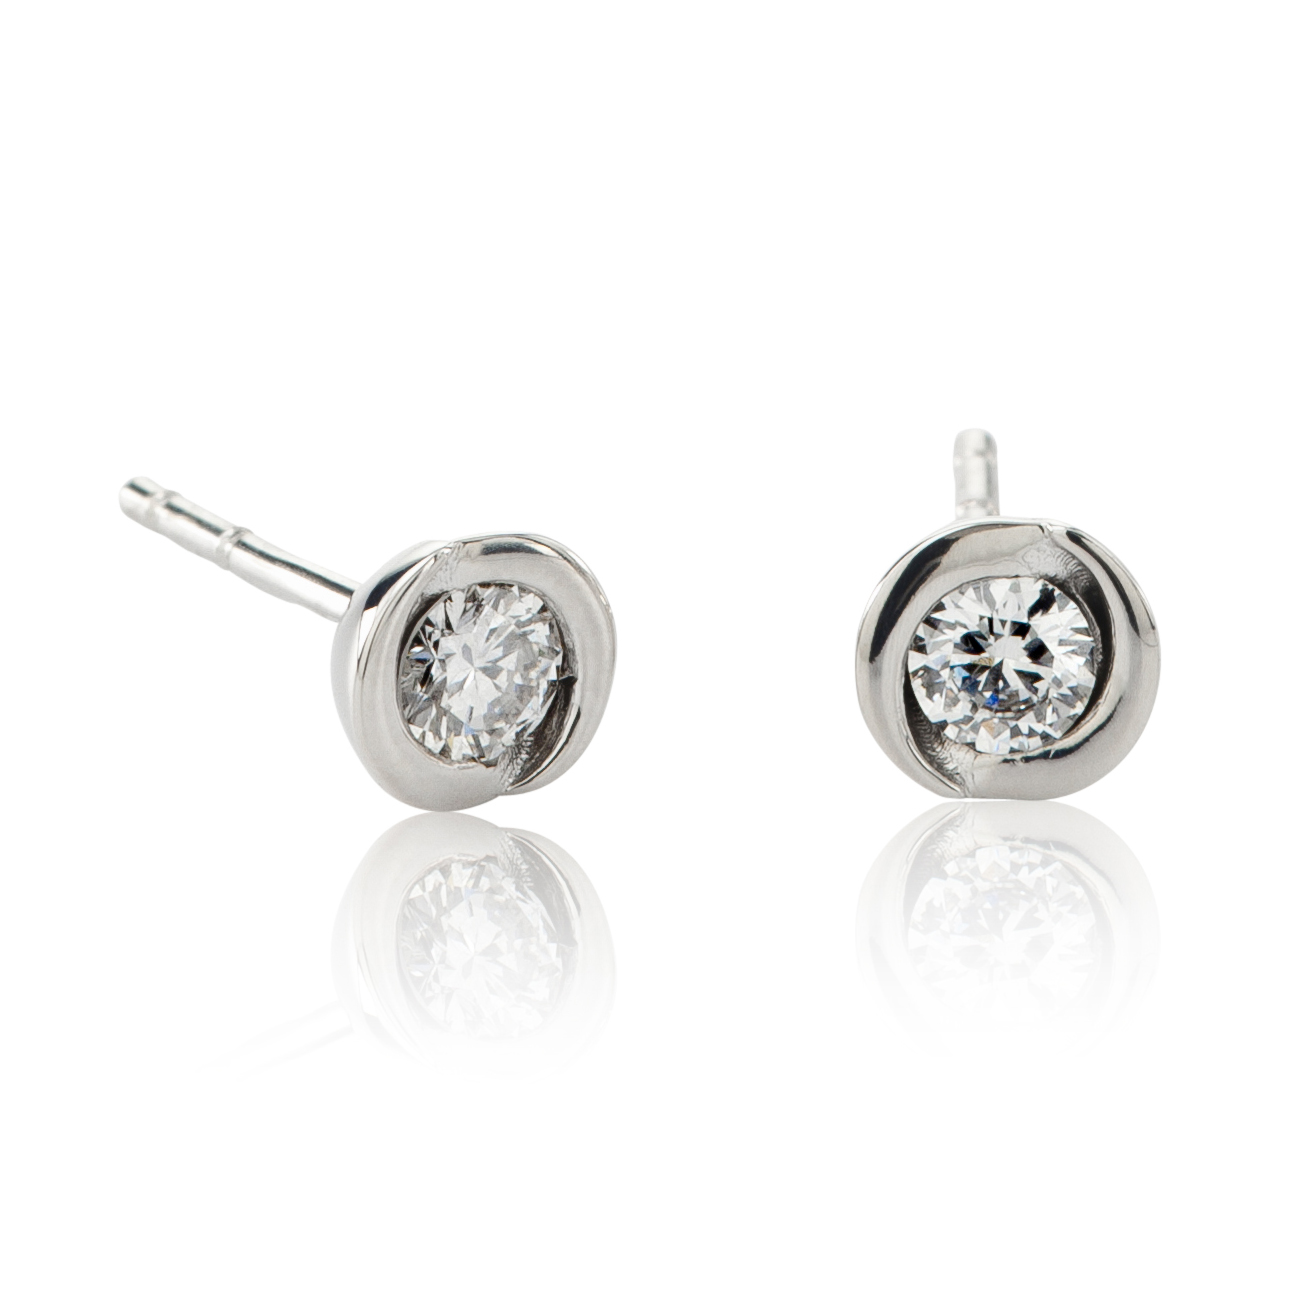 CHIMENTO PAIR EARRINGS LIGHT GOLD WHITE 1OED0072G5000